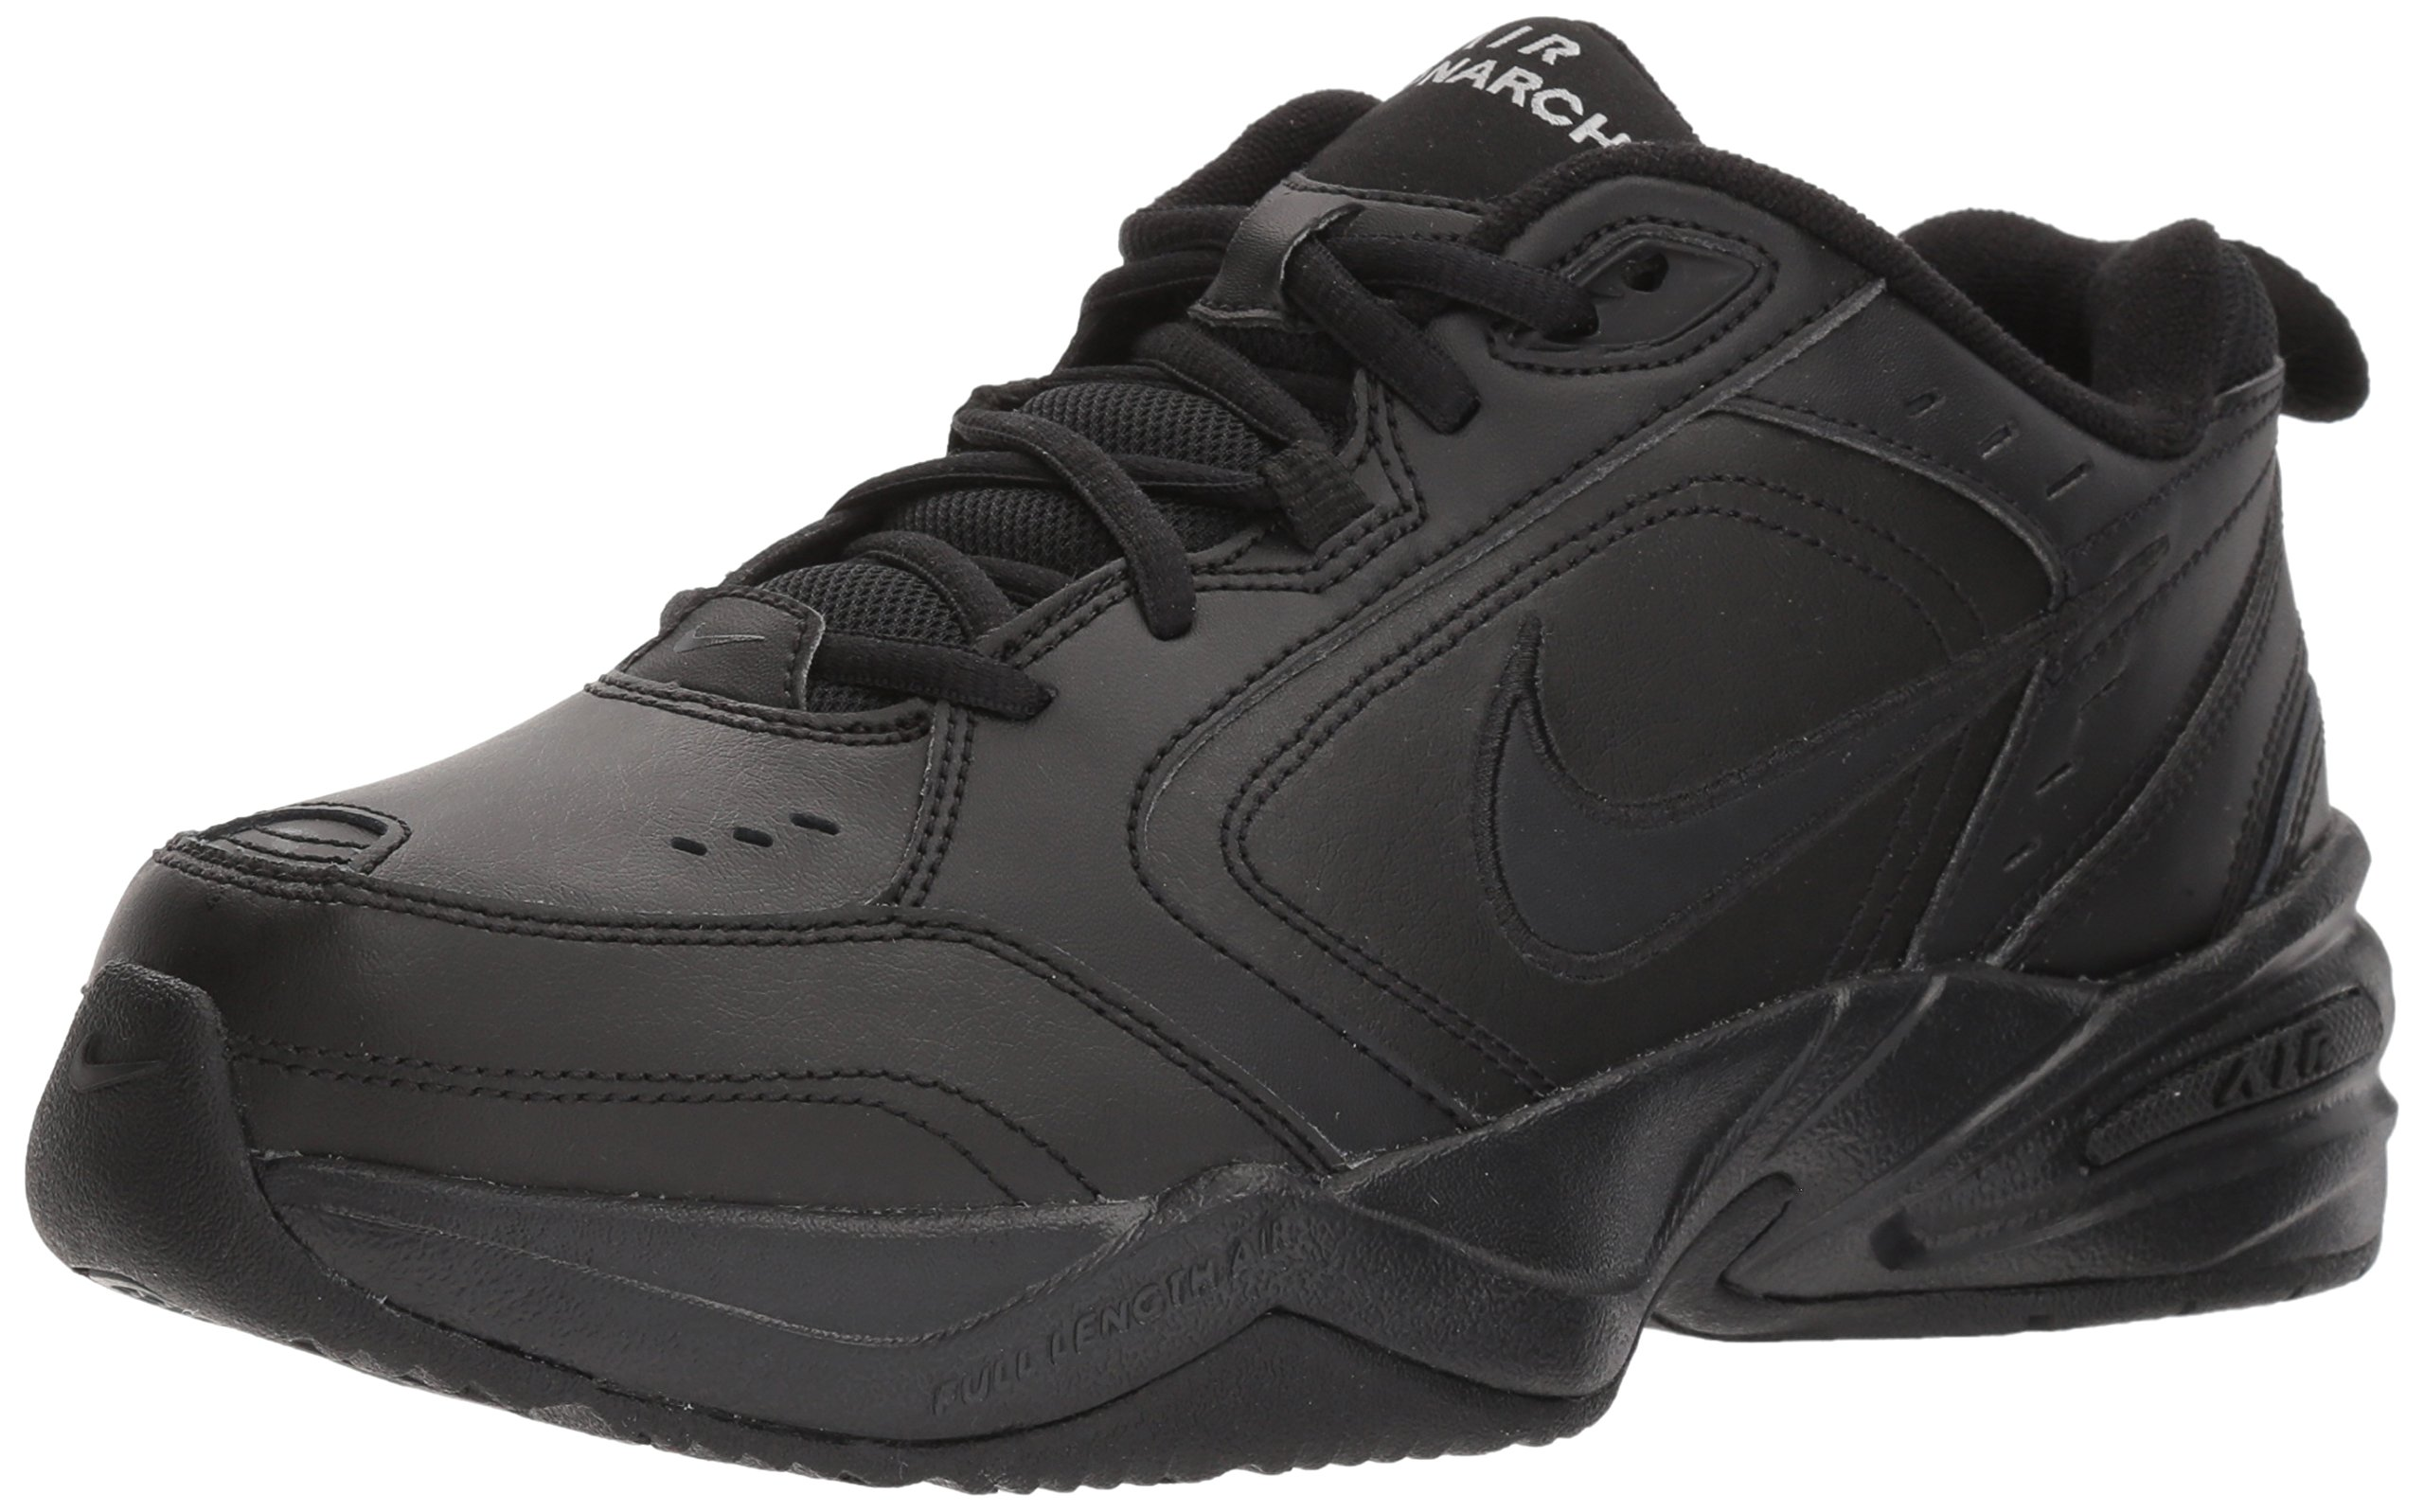 NIKE AIR MONARCH IV (MENS) - 6 Black/Black